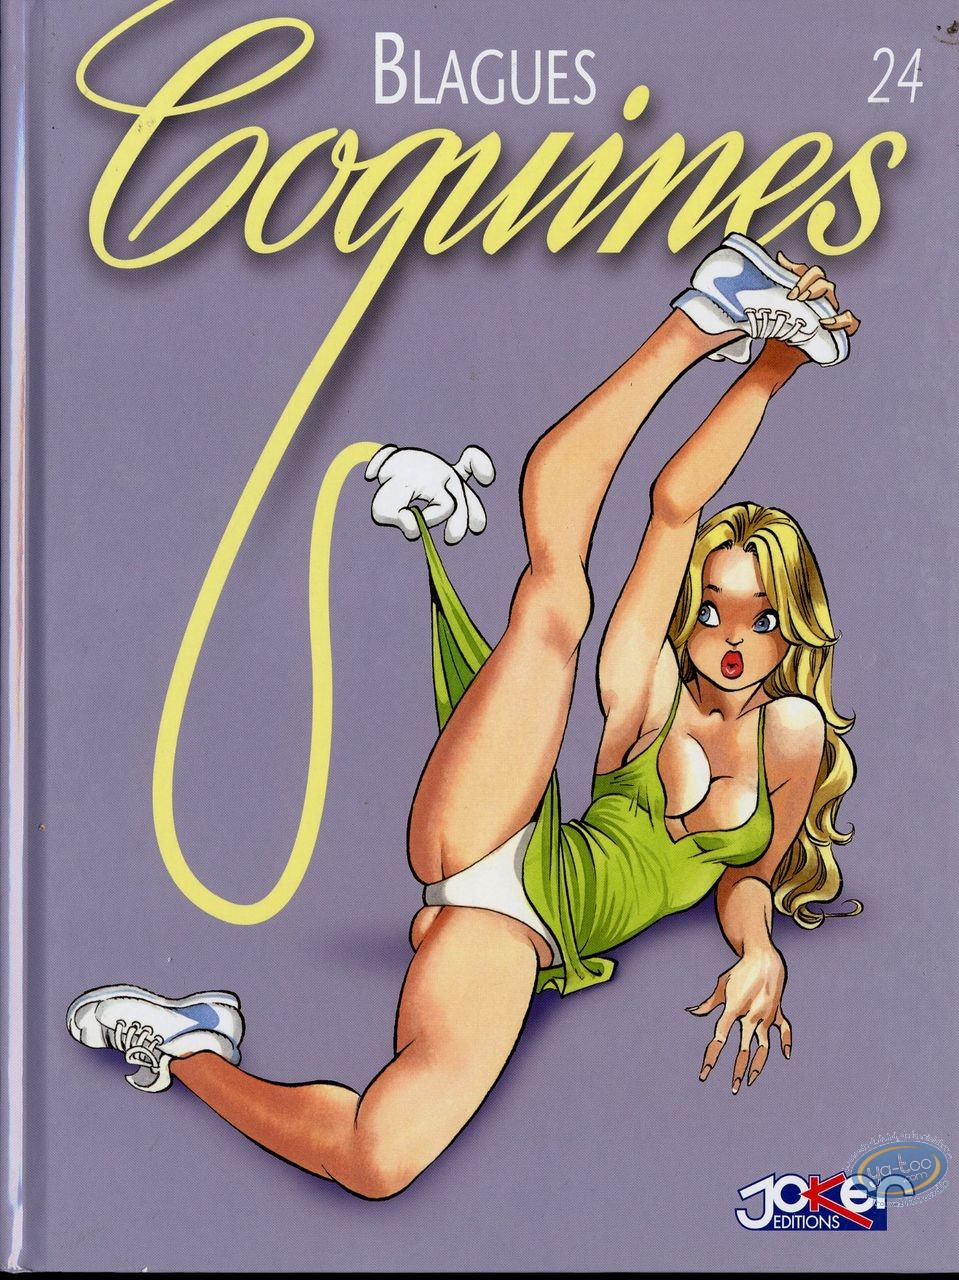 BD adultes, Blagues Coquines : Blagues Coquines, Tome 24